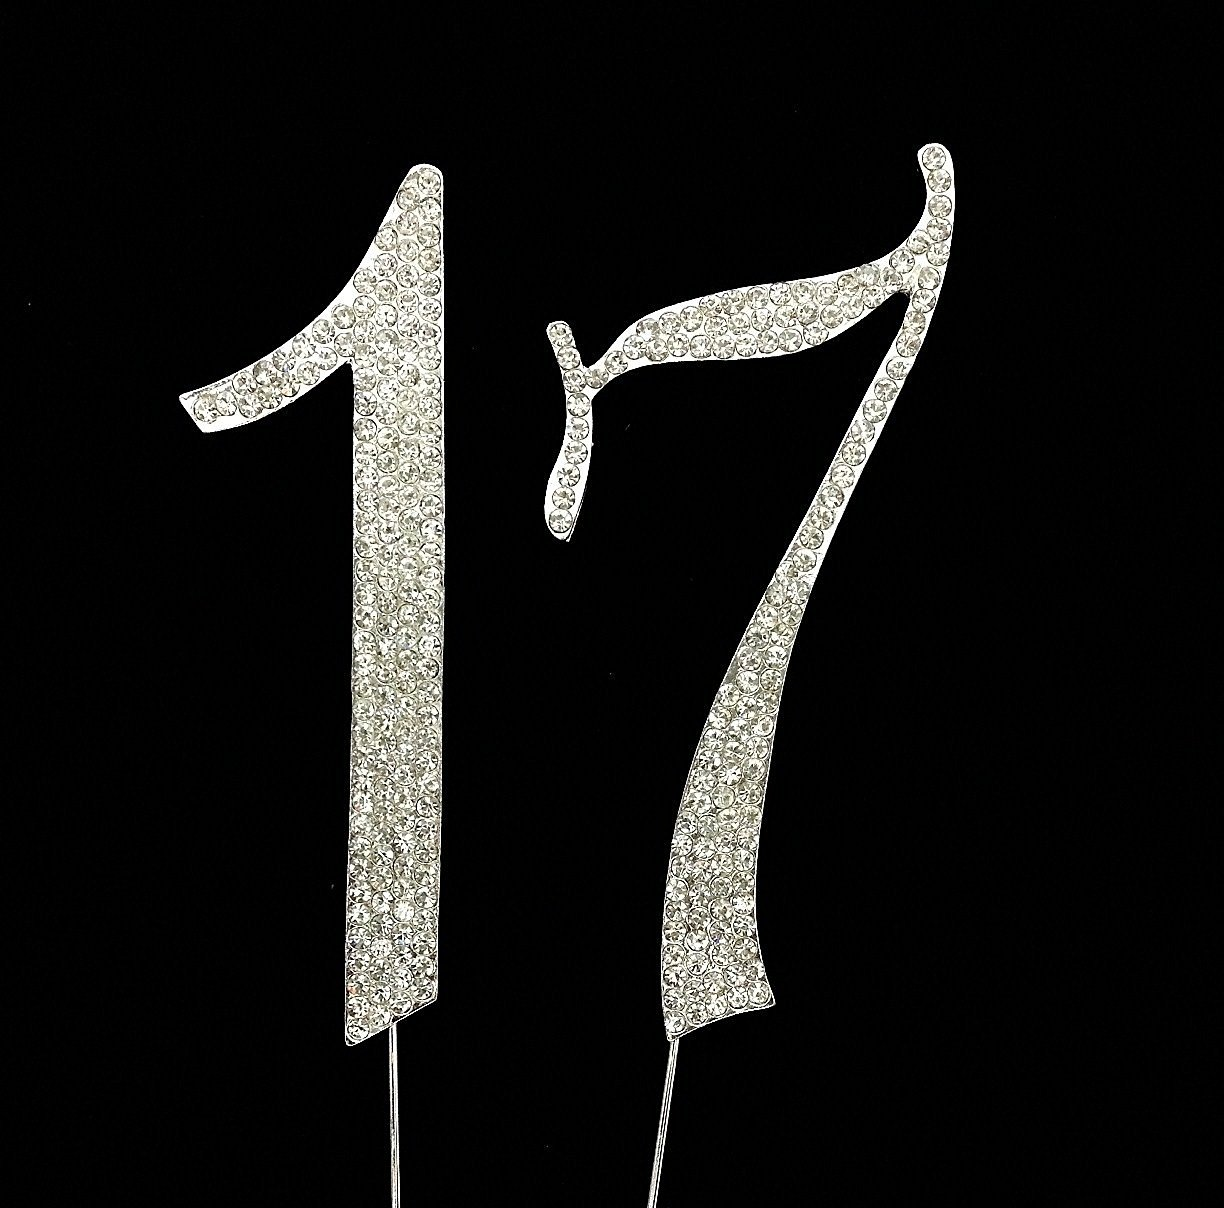 Numbrer 17 For 17th Birthday Or Anniversary Cake Topper Party Decoration Supplies Silver 45